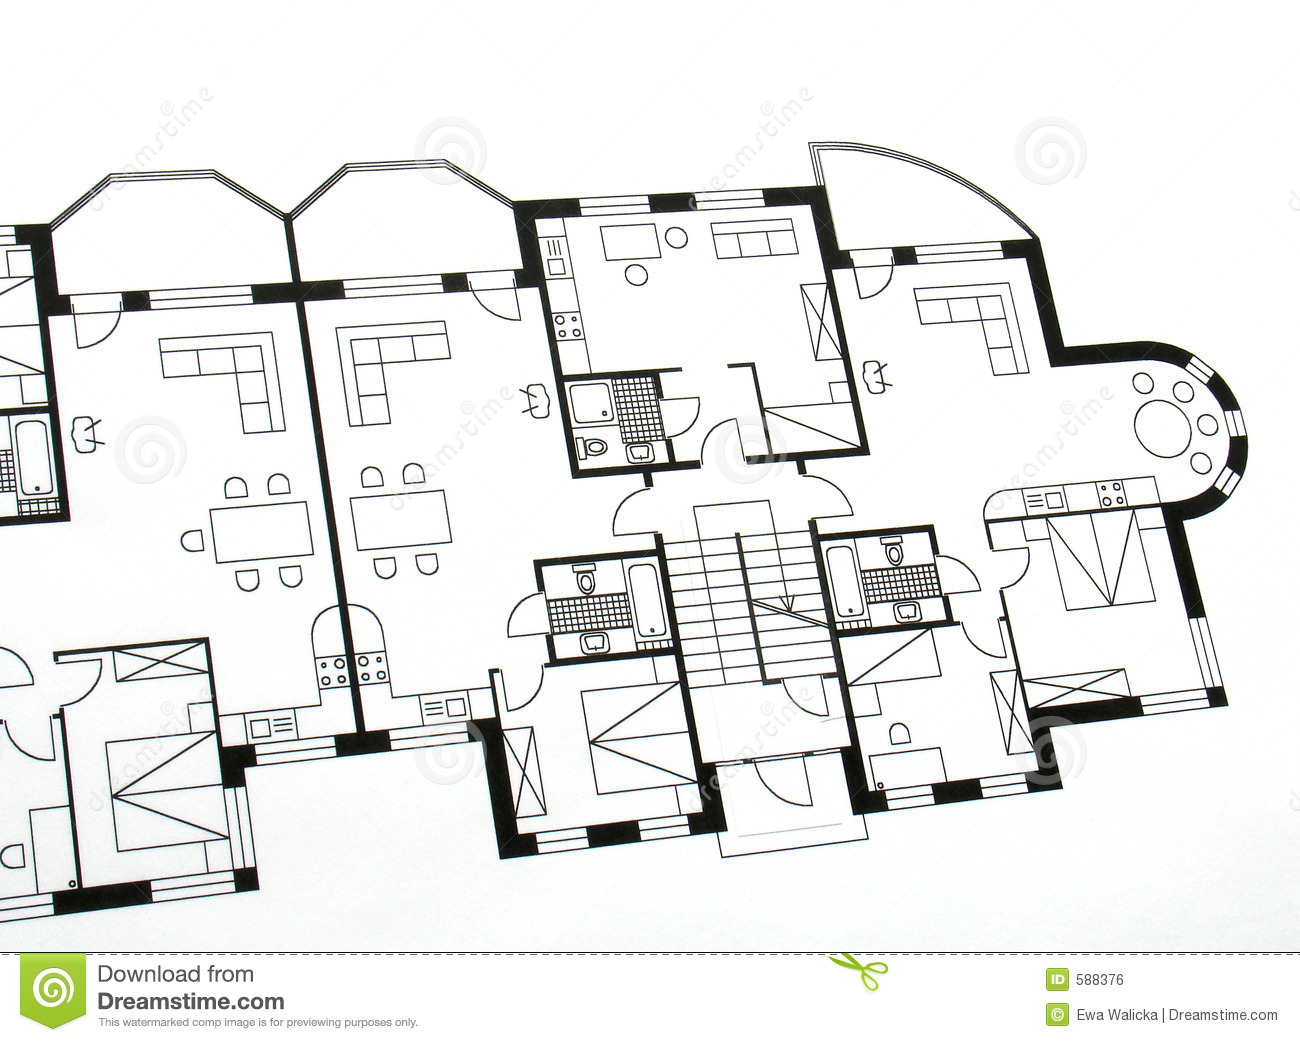 Architectural Plan Stock Photo. Image Of Diagram, Outline